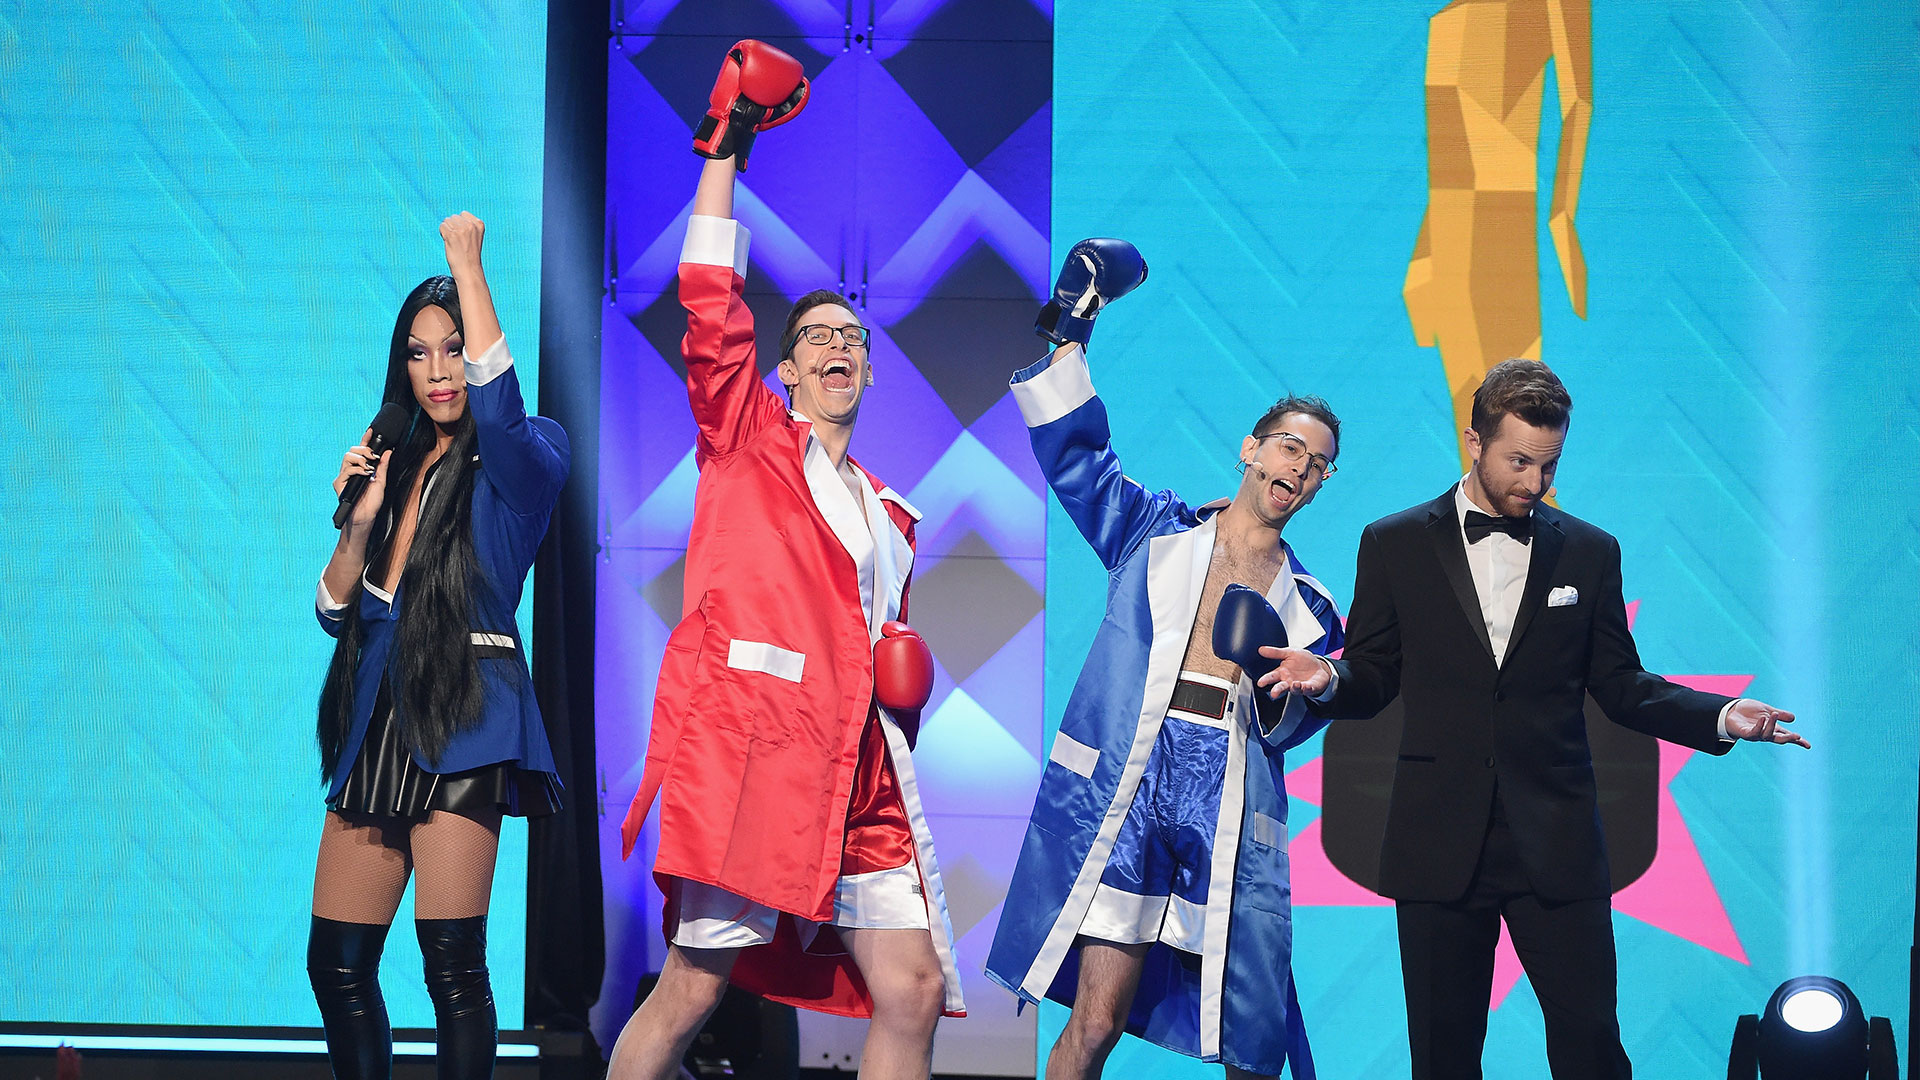 Winners Announced For The 8th Annual Streamy Awards The